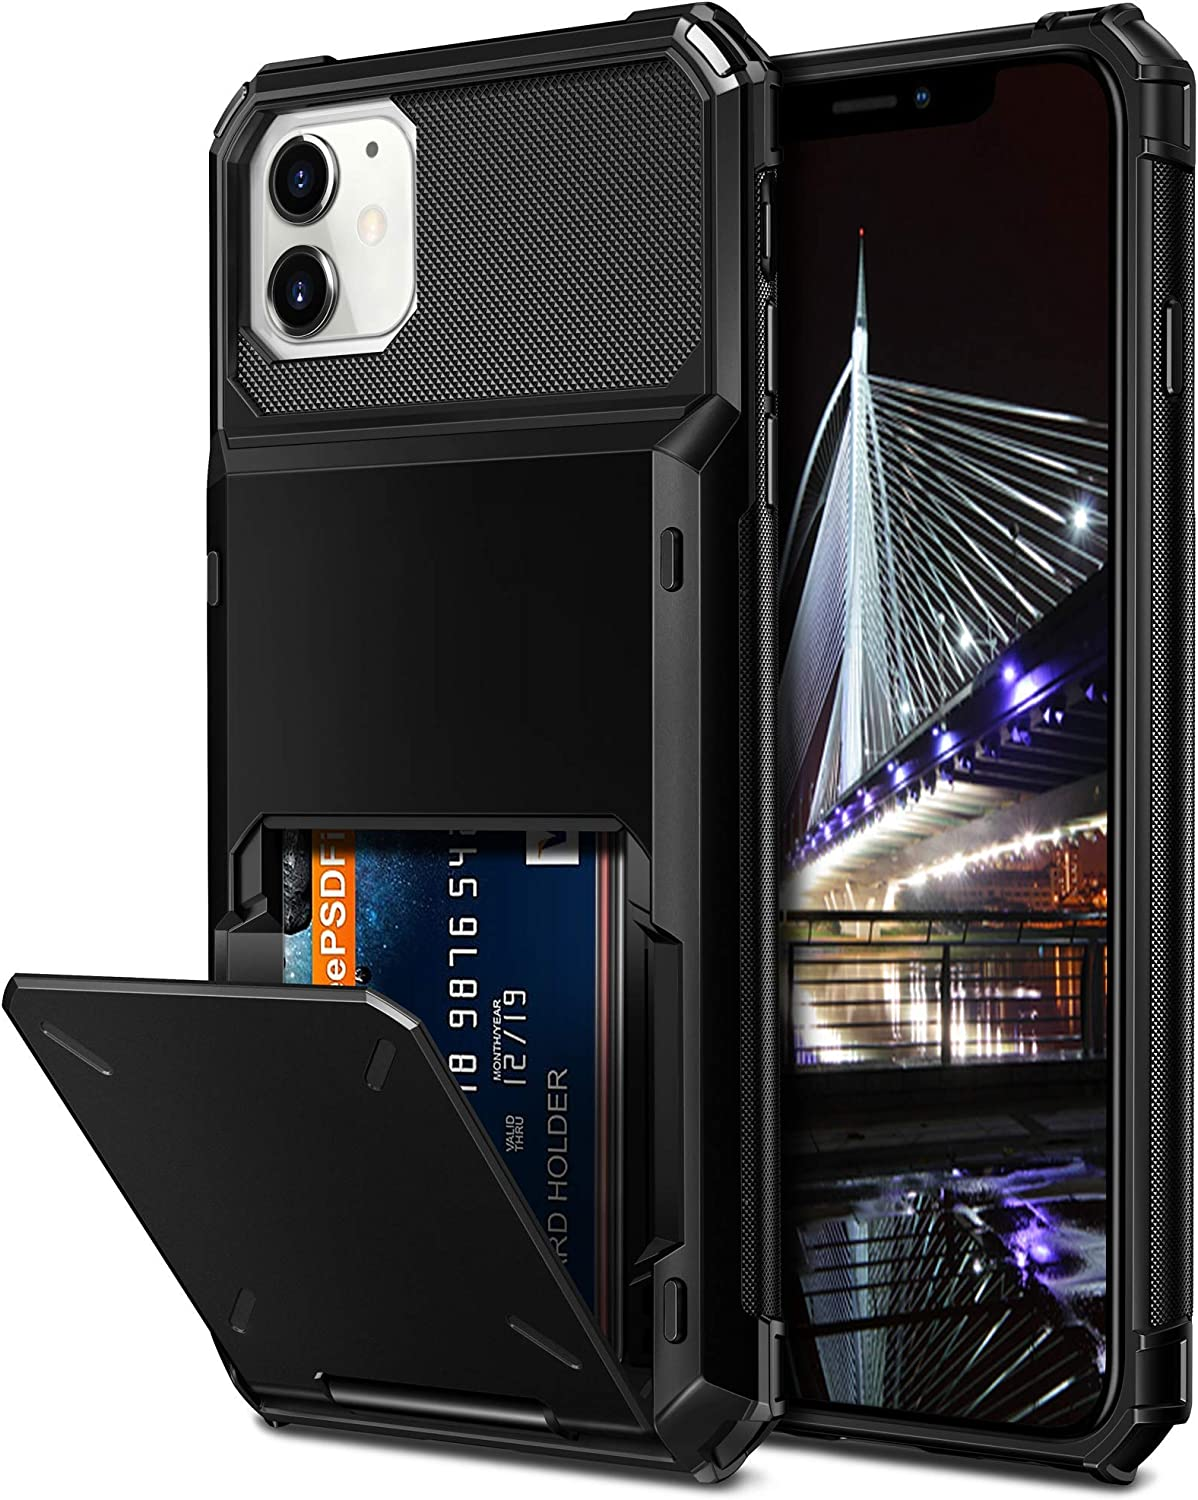 Vofolen Compatible with iPhone 12 Case 5G Wallet 12 Pro 4-Card Slot Credit Card Holder Flip Hidden Pocket Dual Layer Protective Back Cover Compatible with iPhone 12/12 Pro 5G 6.1inch Black